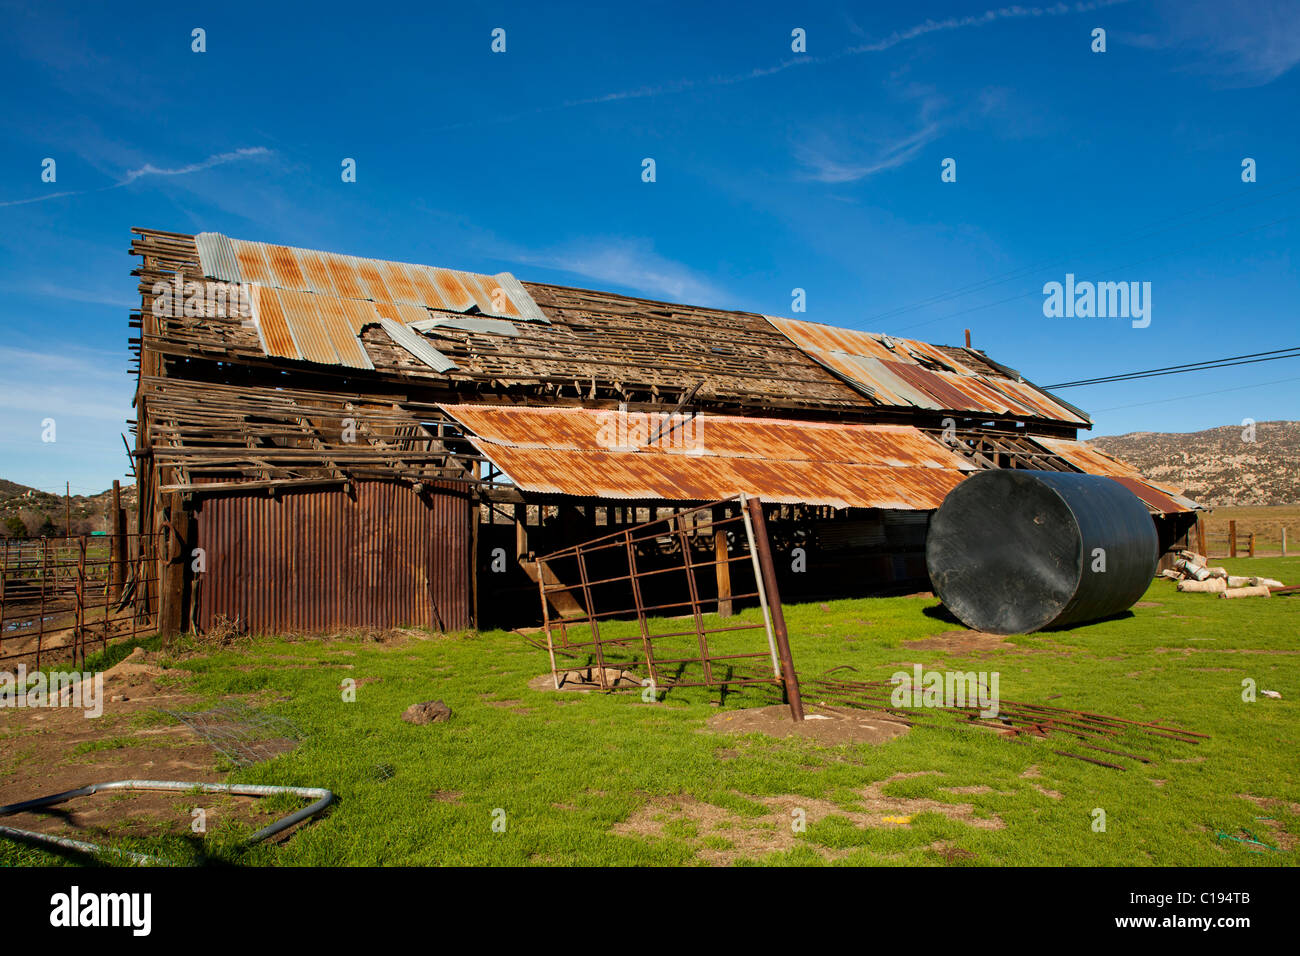 Decrepit Barn House, Aguanga, California, United States of America - Stock Image